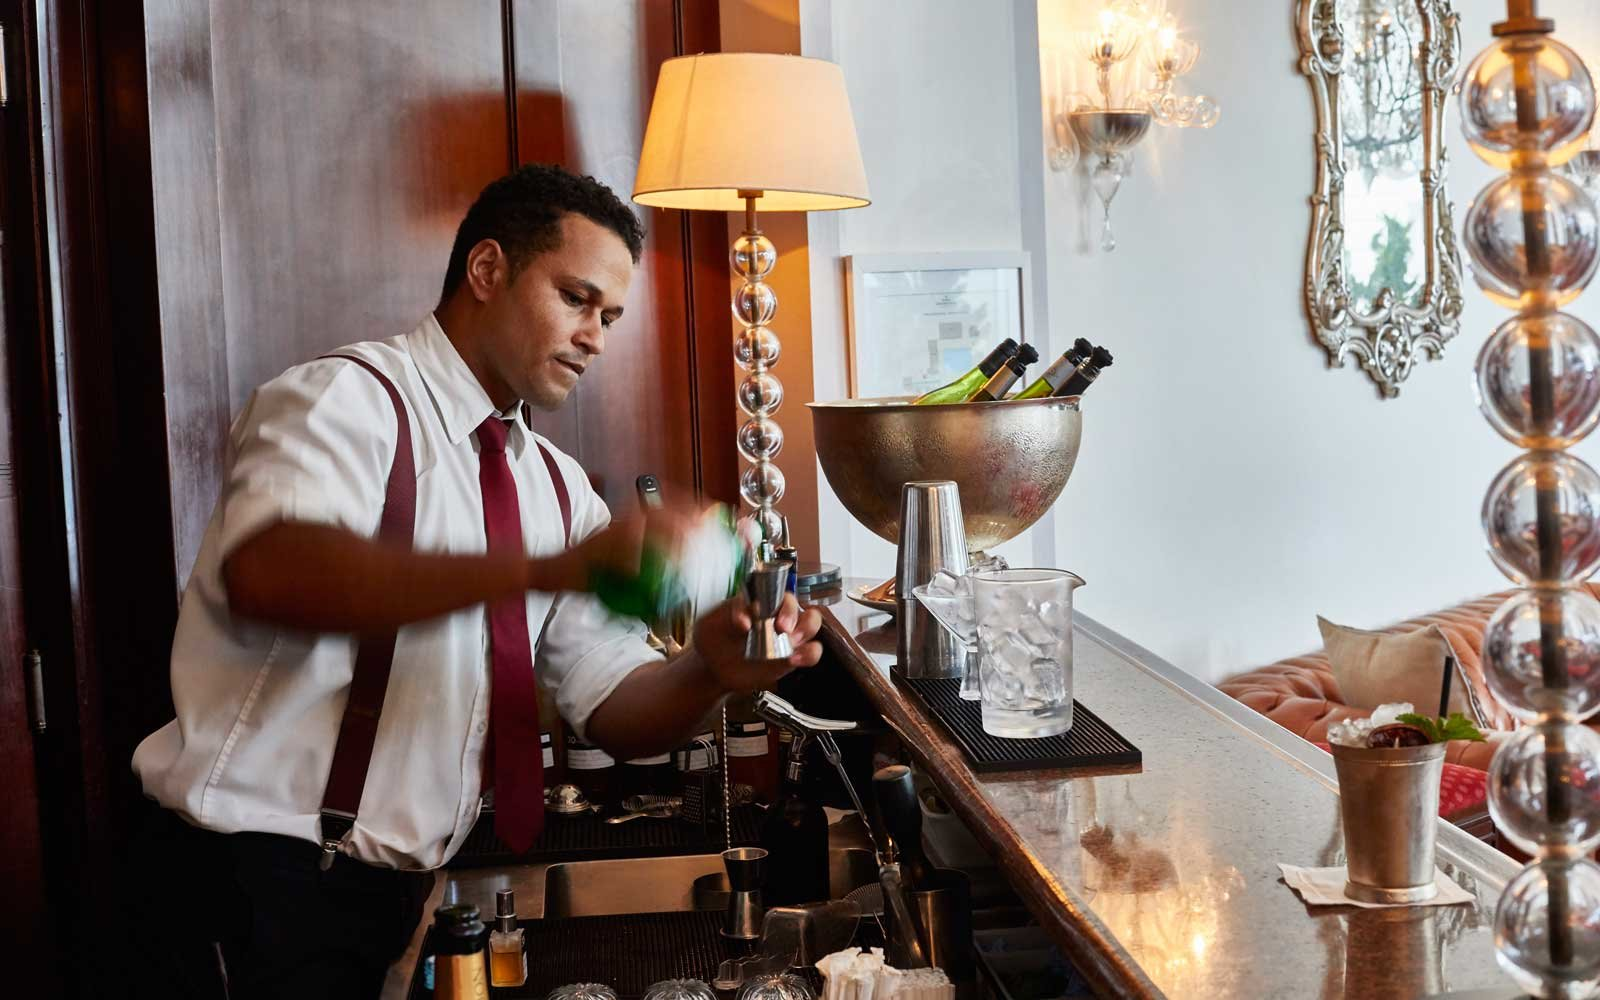 The bartender at the Belmond Copacabana Palace hotel, in Rio de Janeiro, Brazil